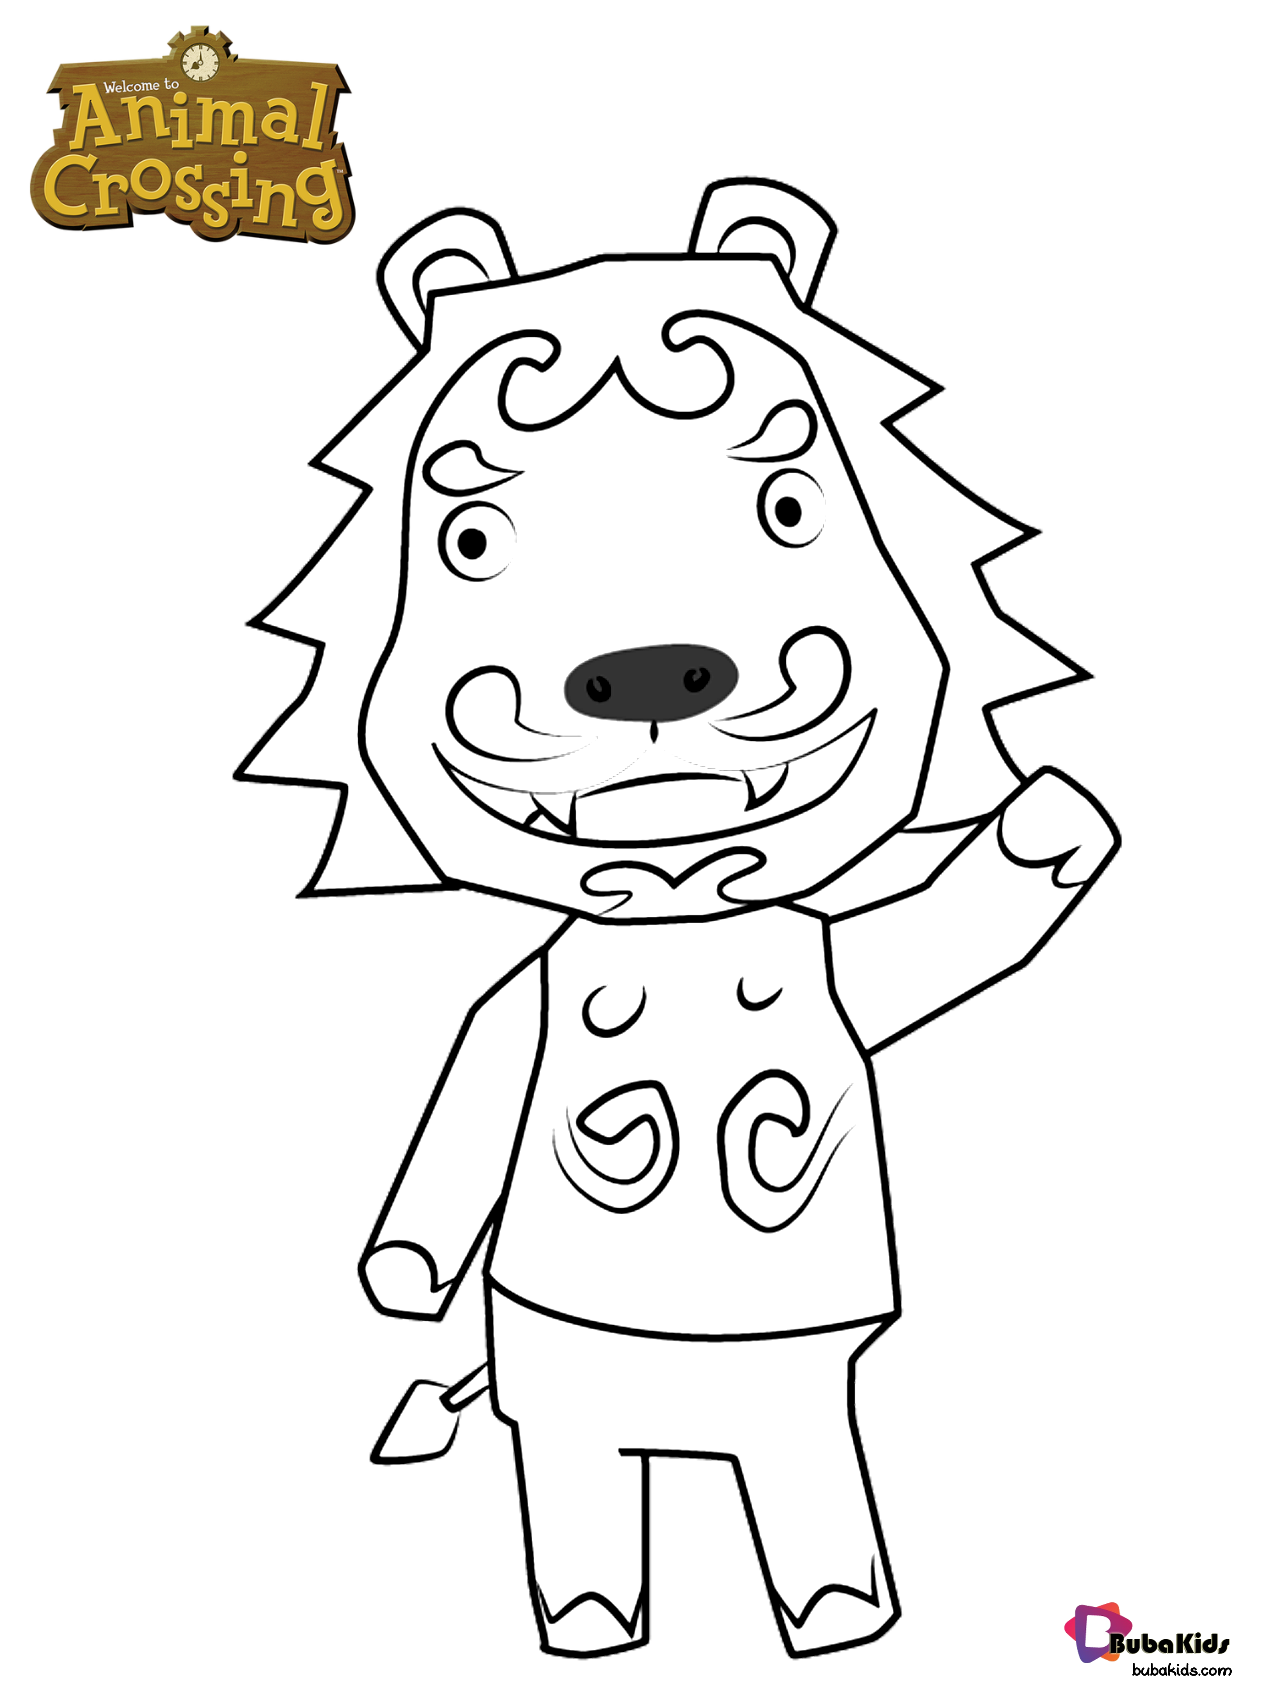 Free And Printable Picture Of Rory From Animal Crossing Character Coloring Page Collection Of Cartoon C In 2020 Animal Crossing Fan Art Animal Crossing Coloring Pages